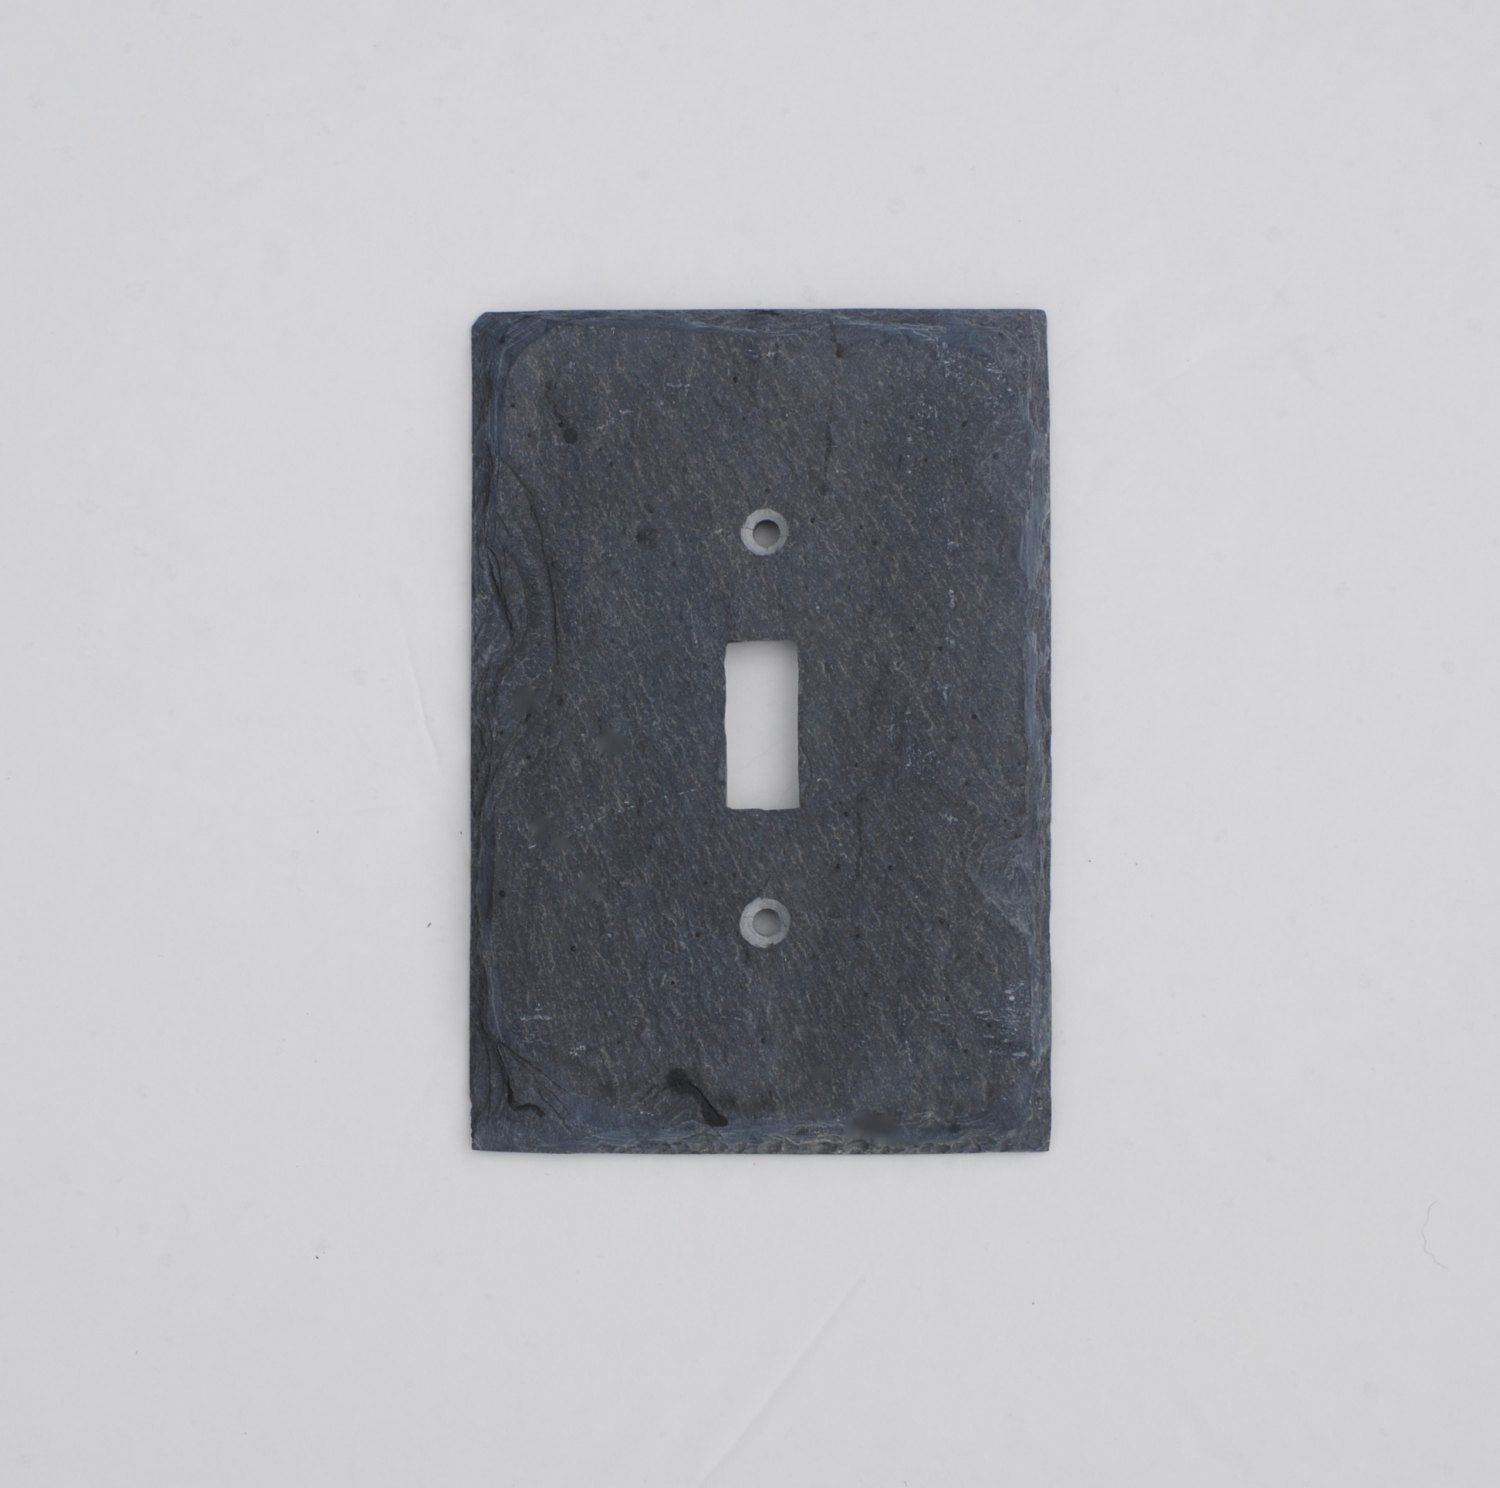 Decorative Light Switch Plates Captivating Decorative Light Switch Cover Switch Plate Wall Plate Rustic Review